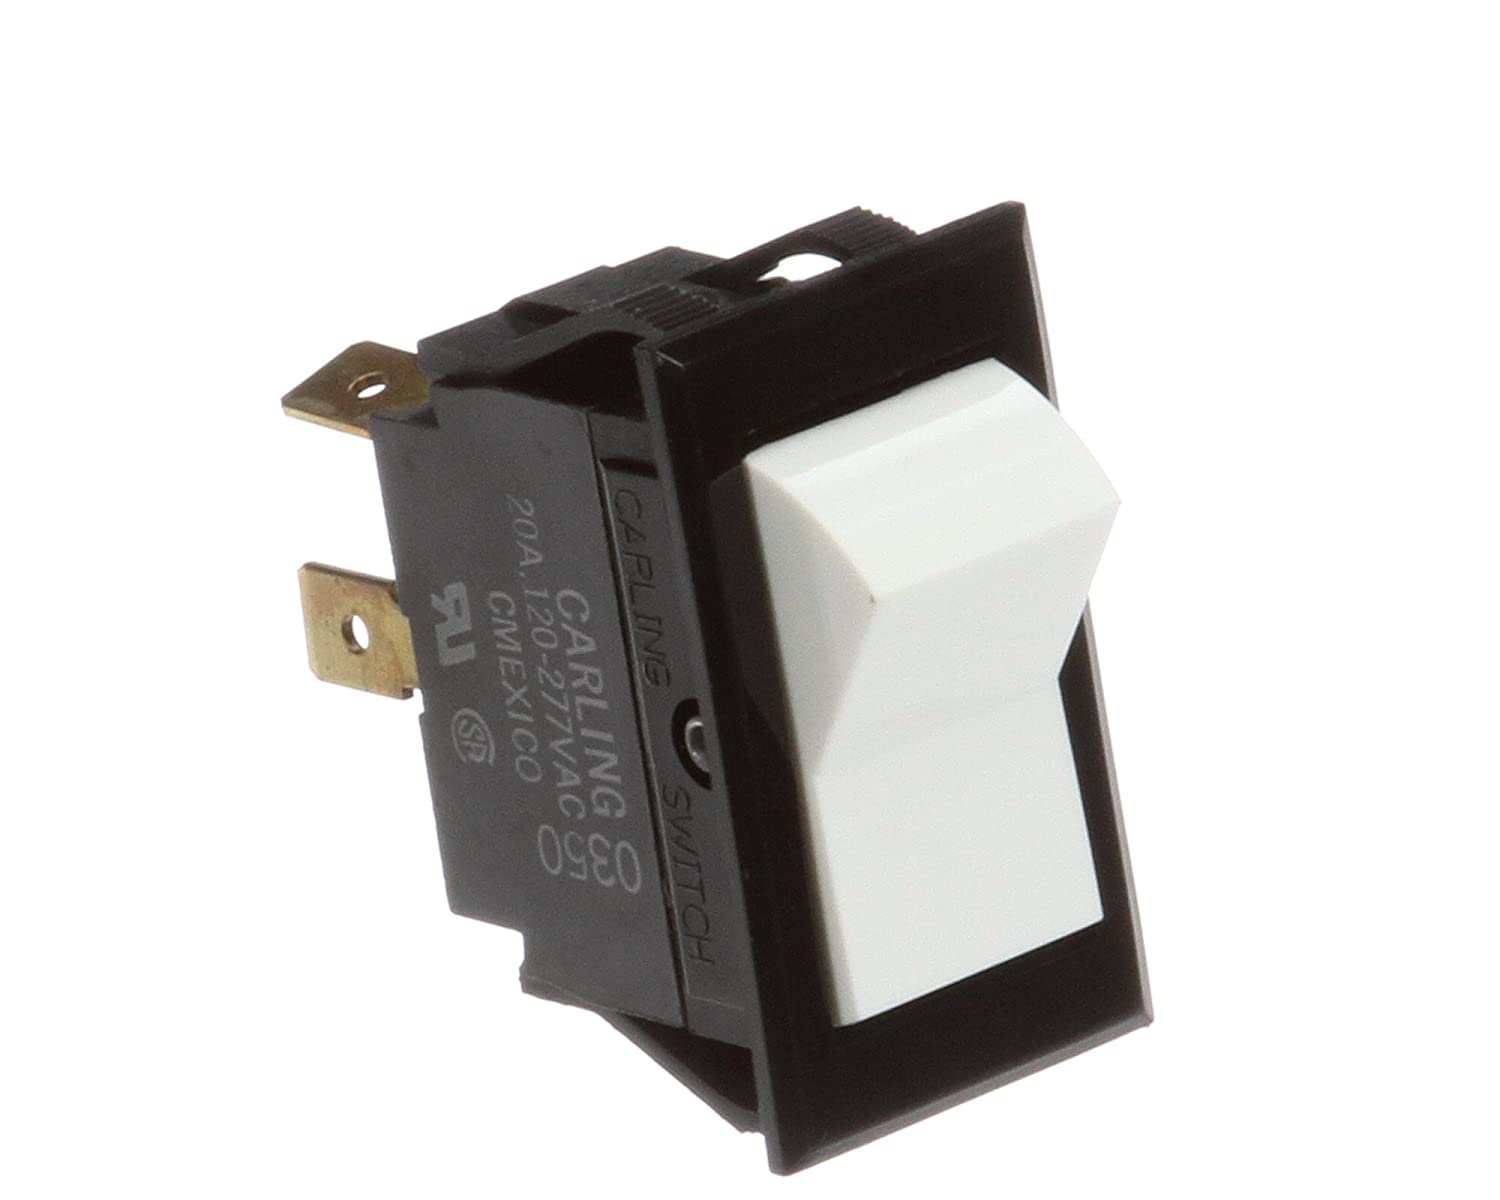 Hamilton Beach 30869800100 On/Off Switch for 990 Commercial Food Blender